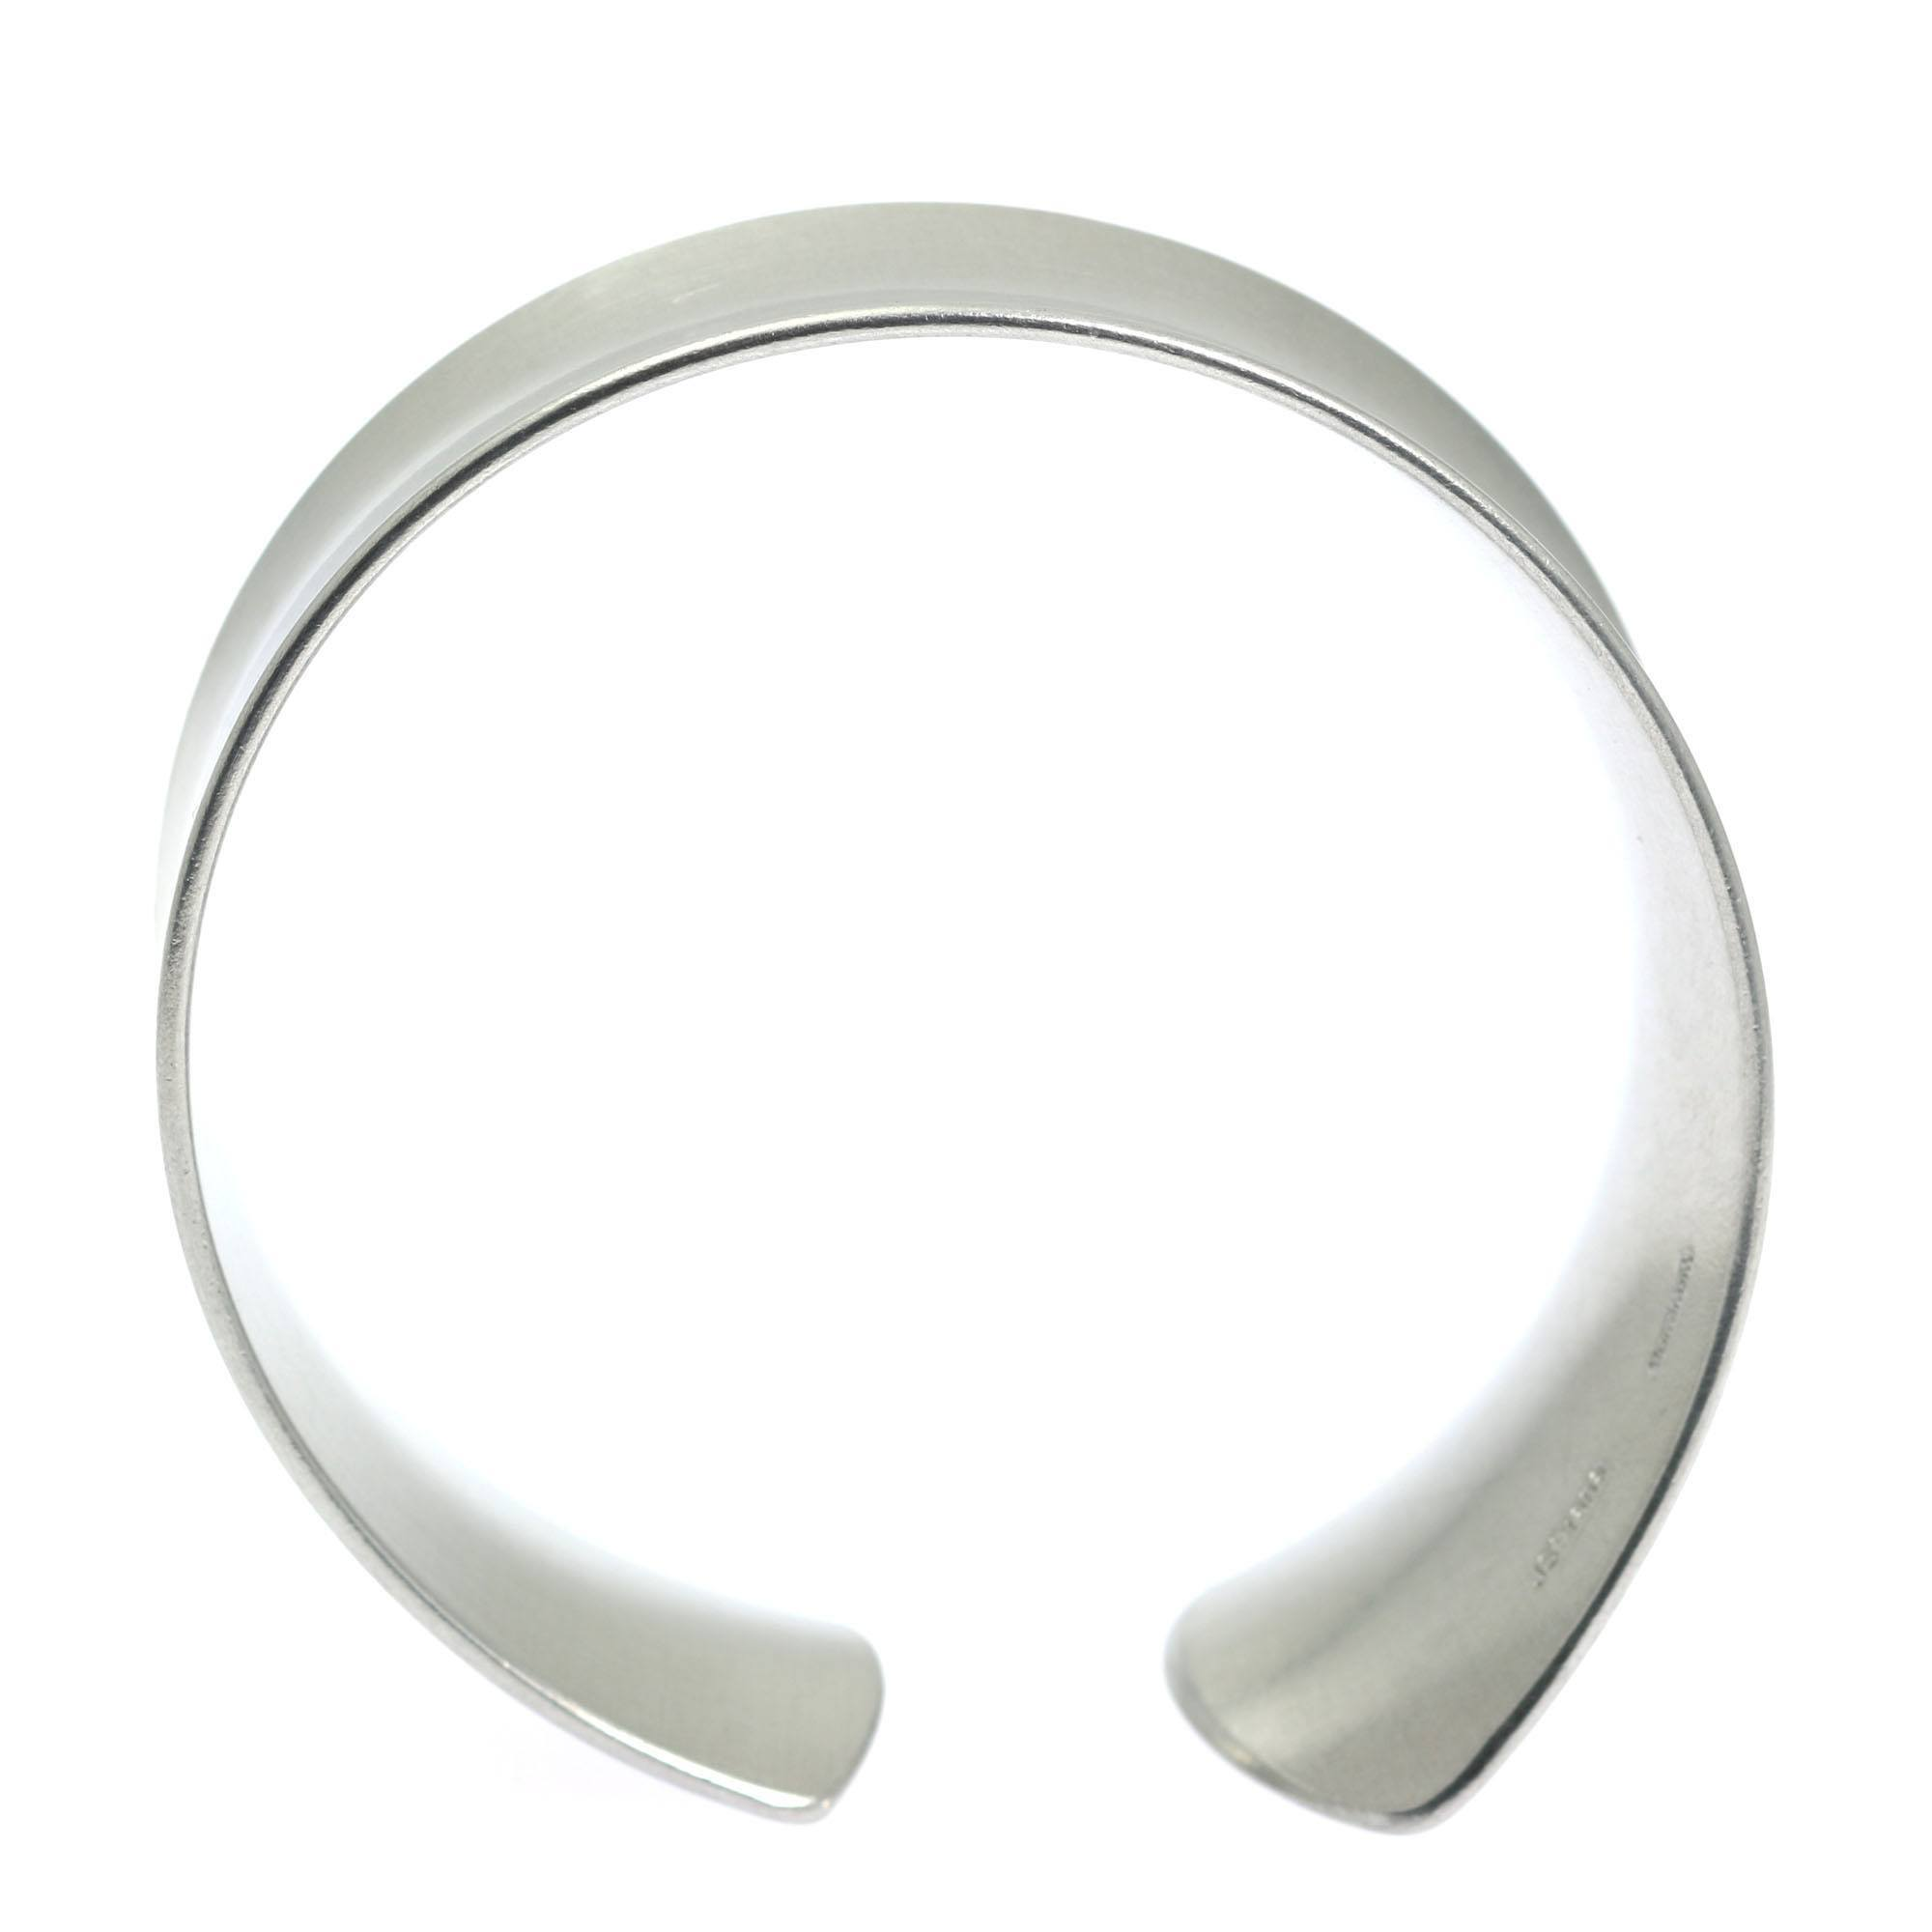 john expensive aluminum tapered brushed bangle brana johnsbrana products anticlastic s bracelet bangles